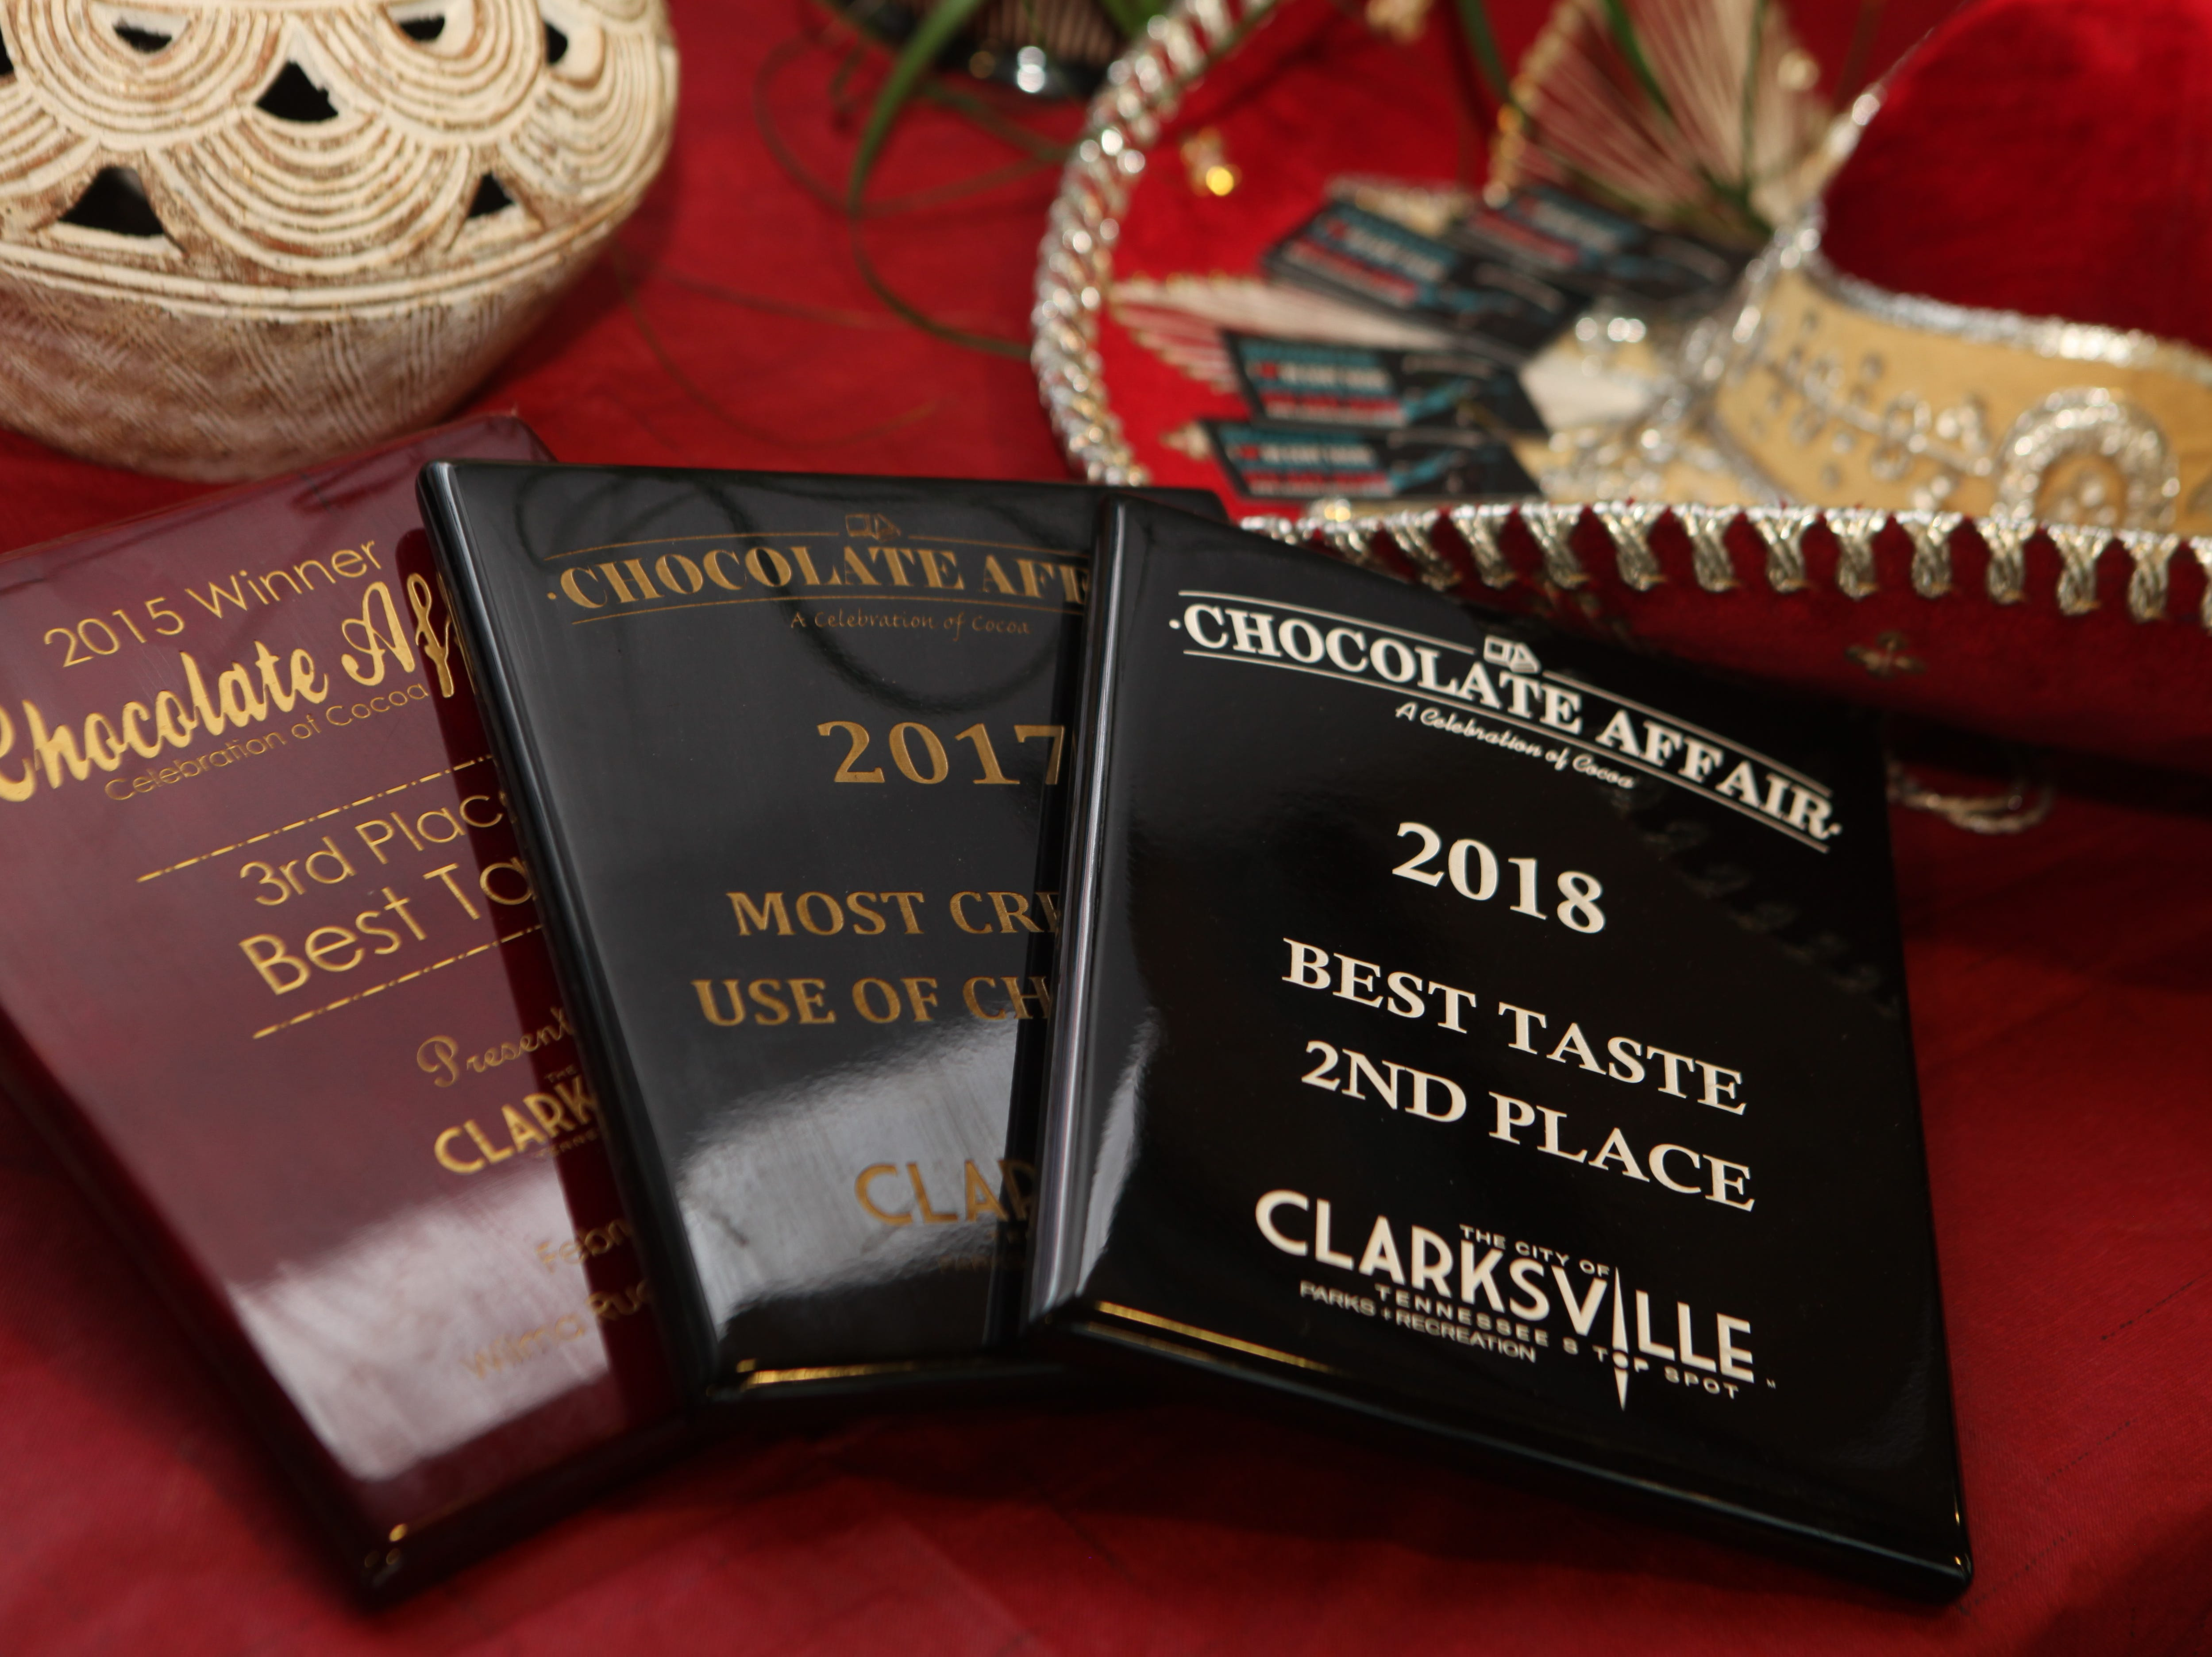 Clarksville Parks & Rec hosted its 7th Annual Chocolate Affair this weekend at Wilma Rudolph Event Center. The sold-out event saw hundreds of guests enjoying chocolate creations from more than a dozen local and national vendors.